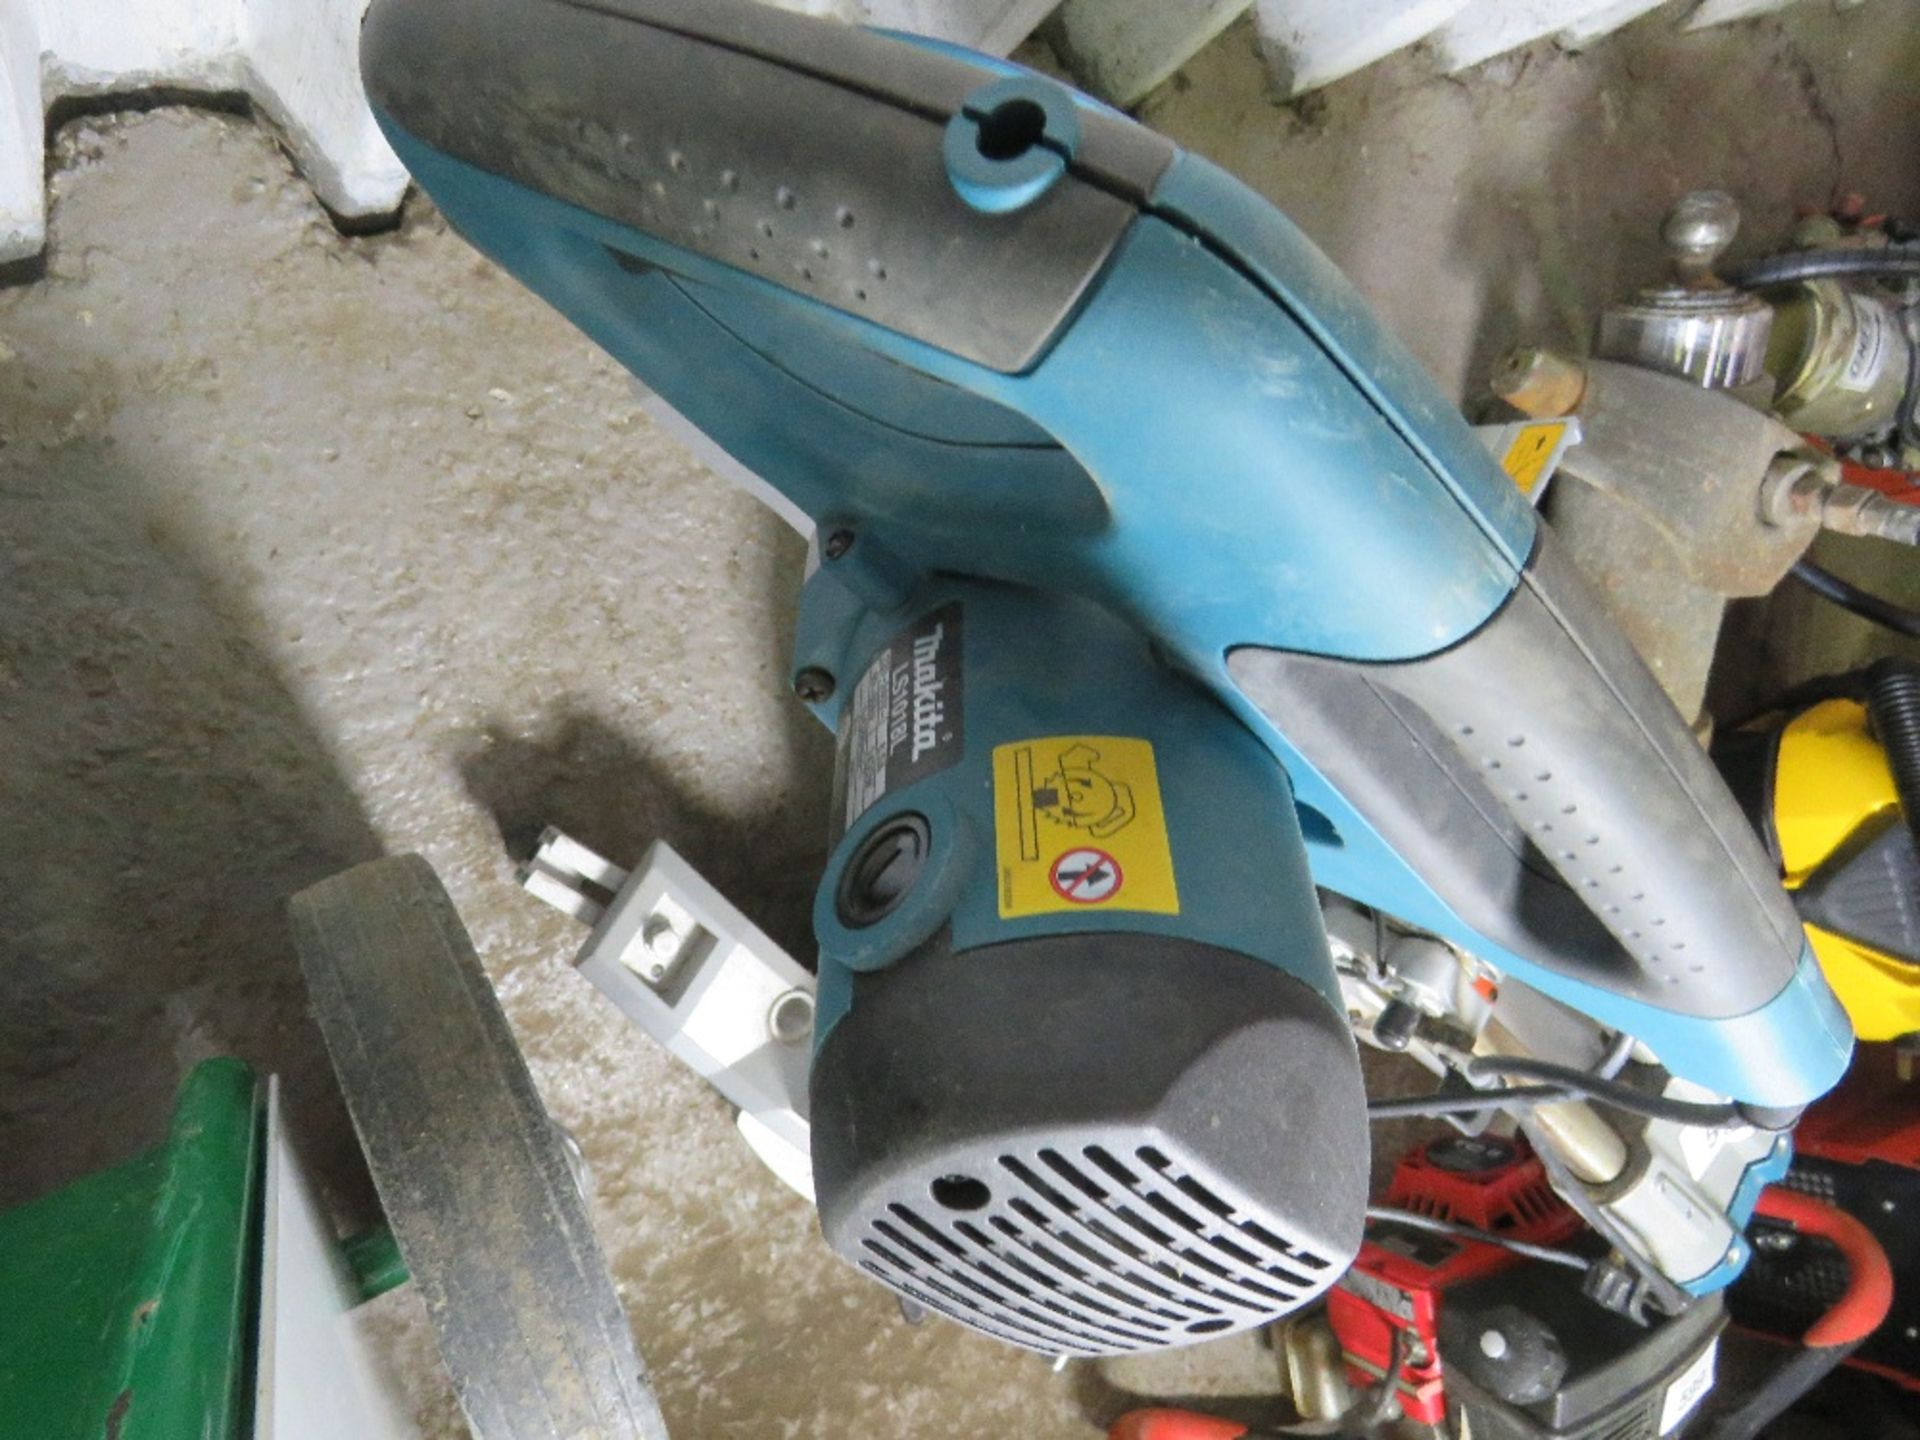 MAKITA 240VOLT MITRE SAW UNIT. UNTESTED, CONDITION UNKNOWN. - Image 3 of 3